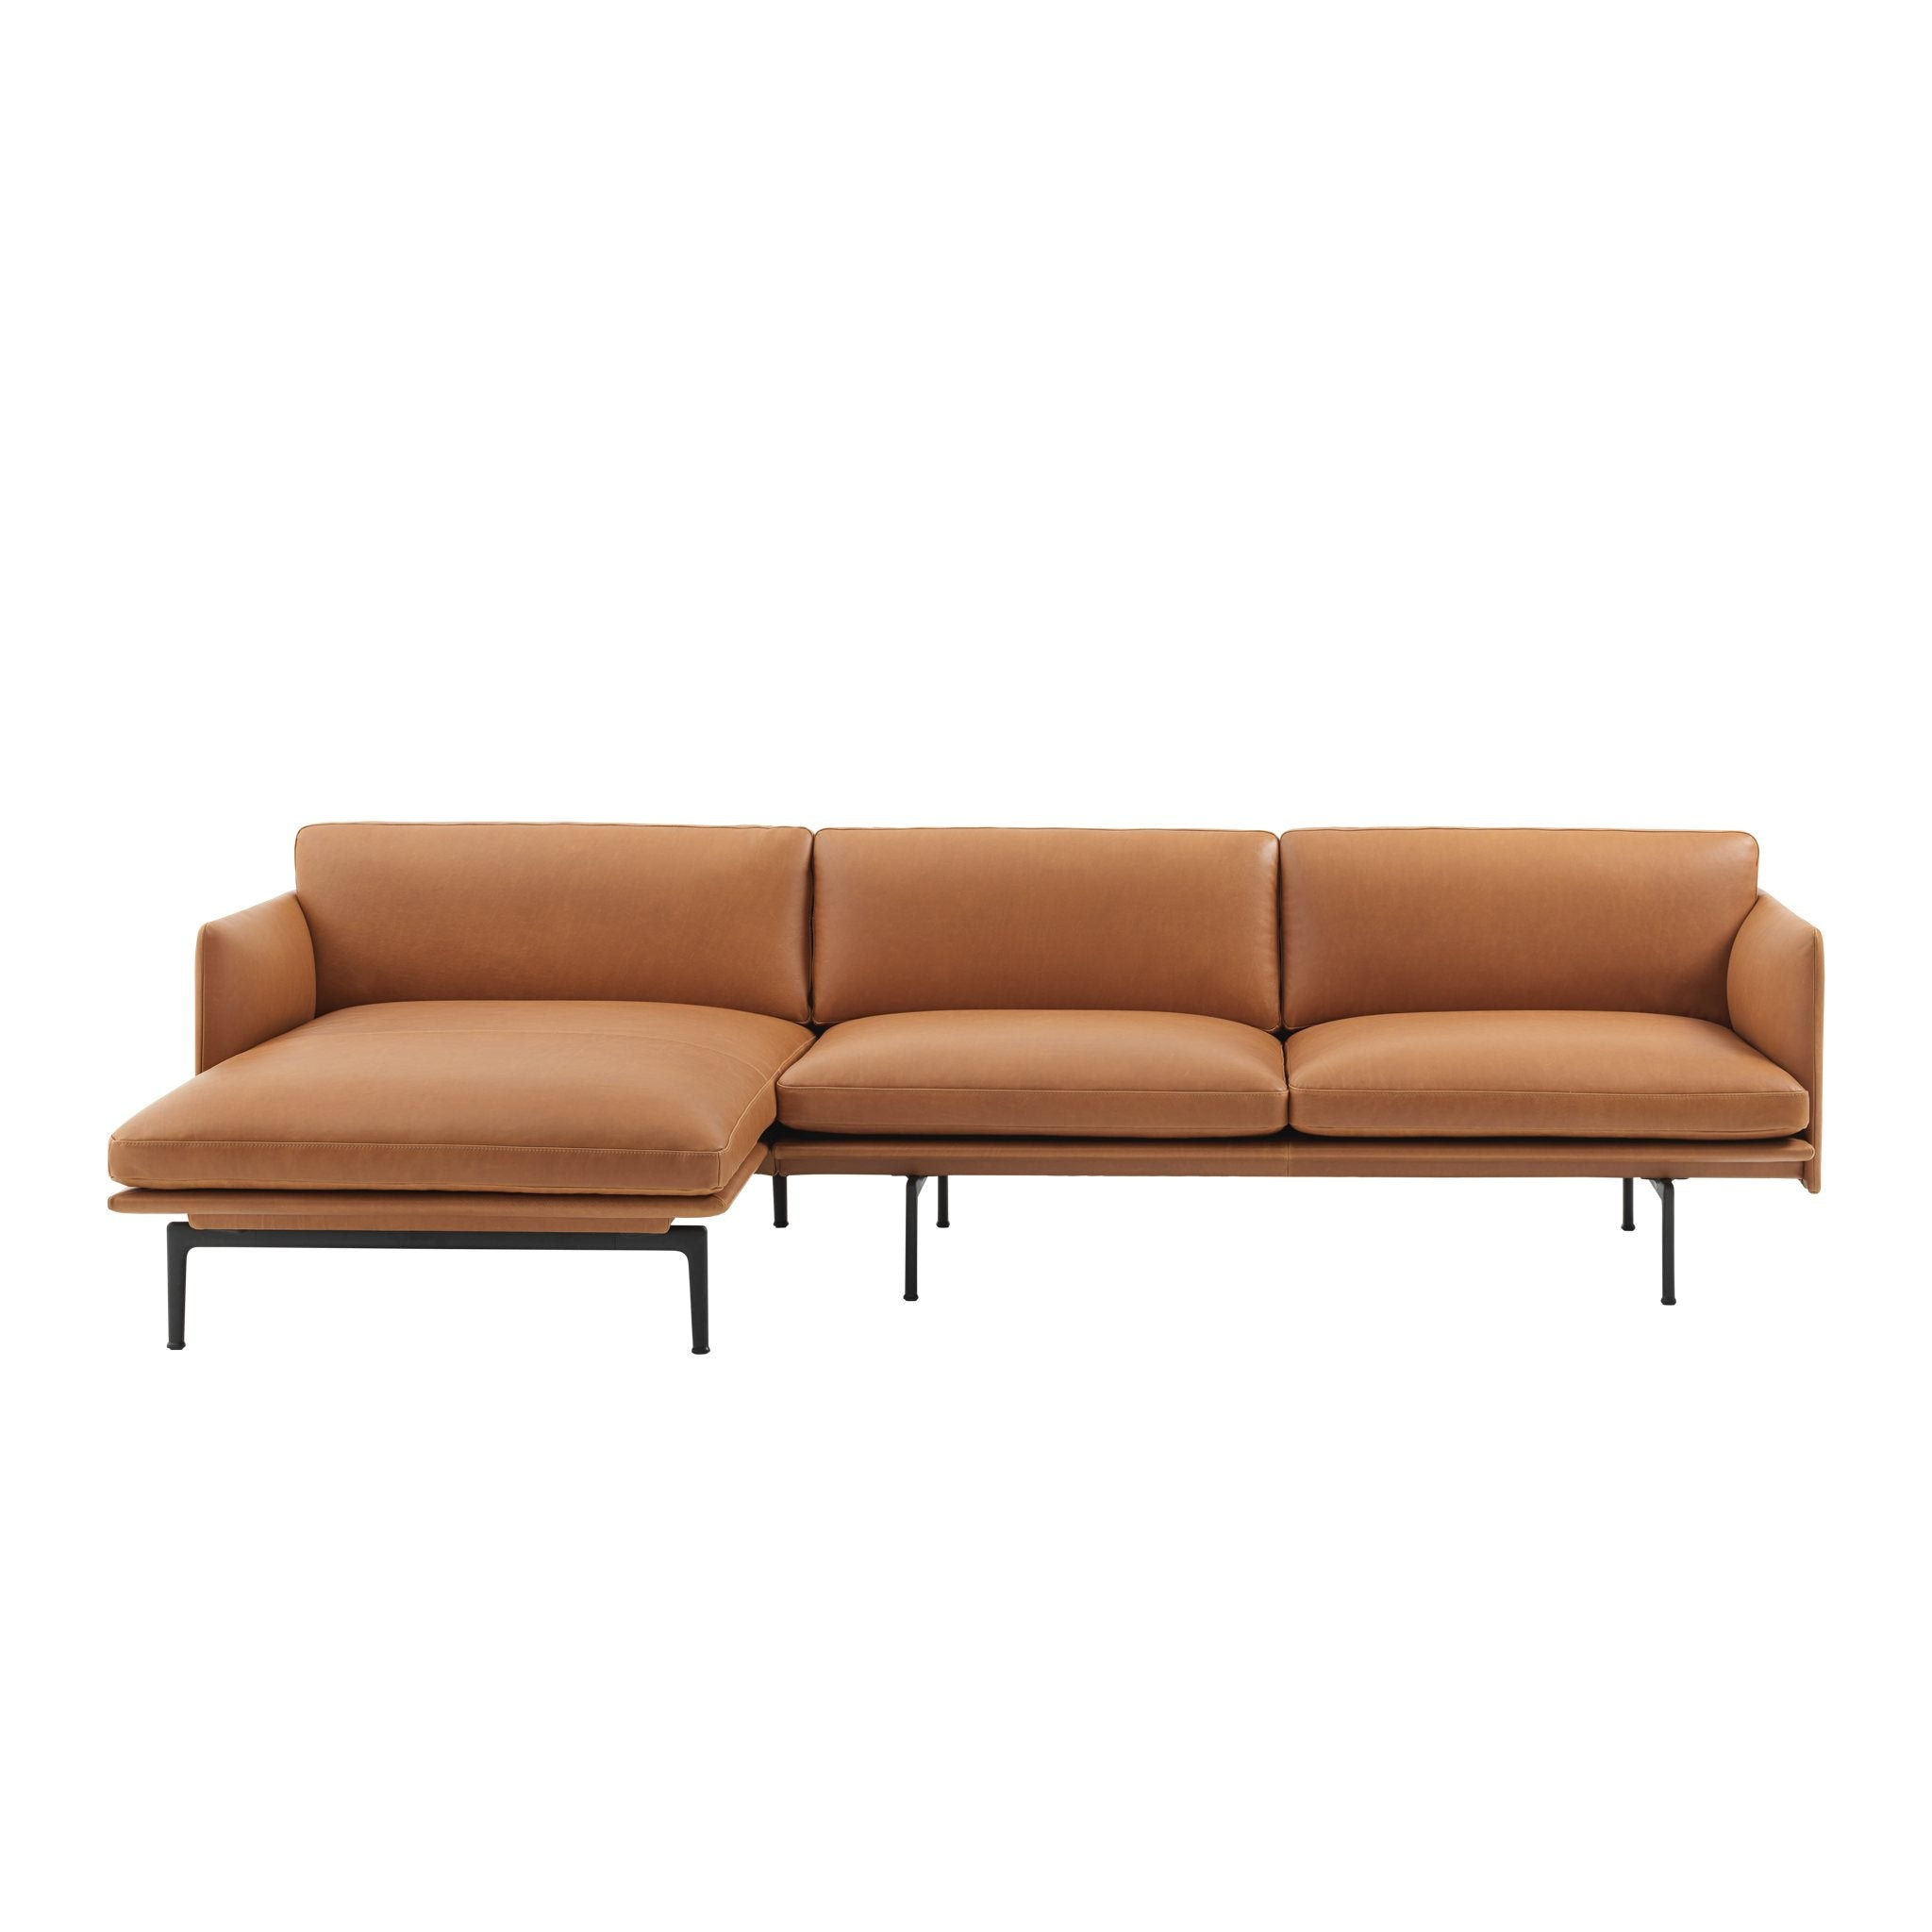 Outline Sofa/Chaise Longue by Muuto